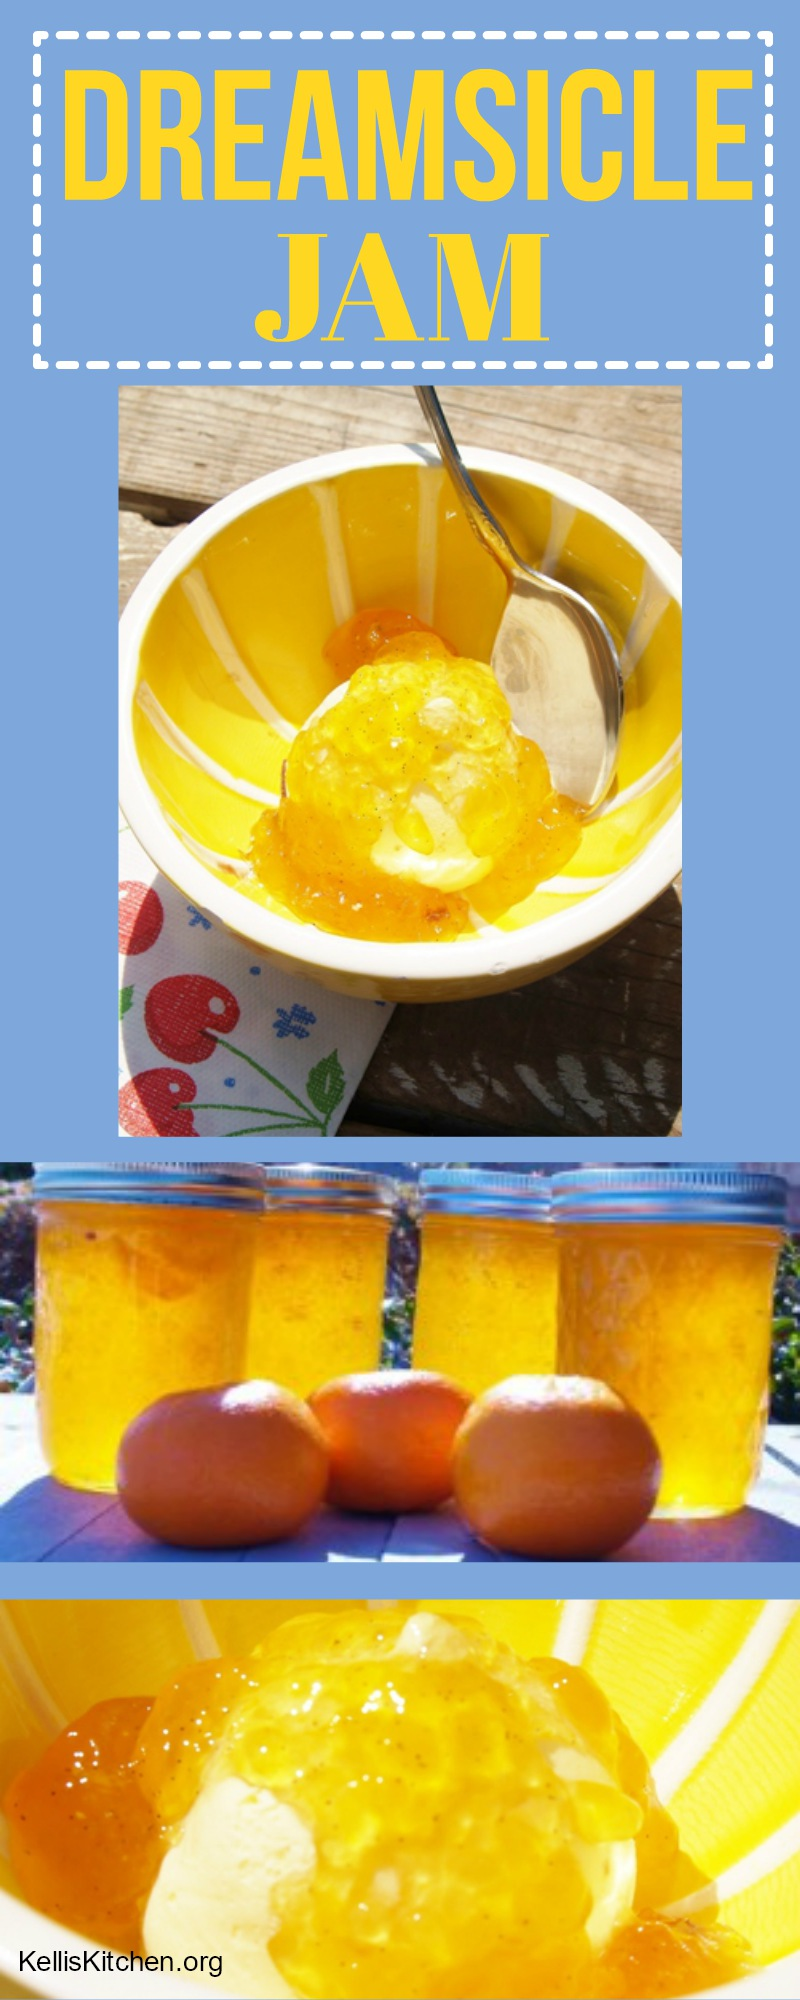 Dreamsicle Jelly Whether you call it dreamsicle, creamsicle, jam, jelly or marmalade it's made with oranges and vanilla bean making it lip-smacking delicious! via @KitchenKelli